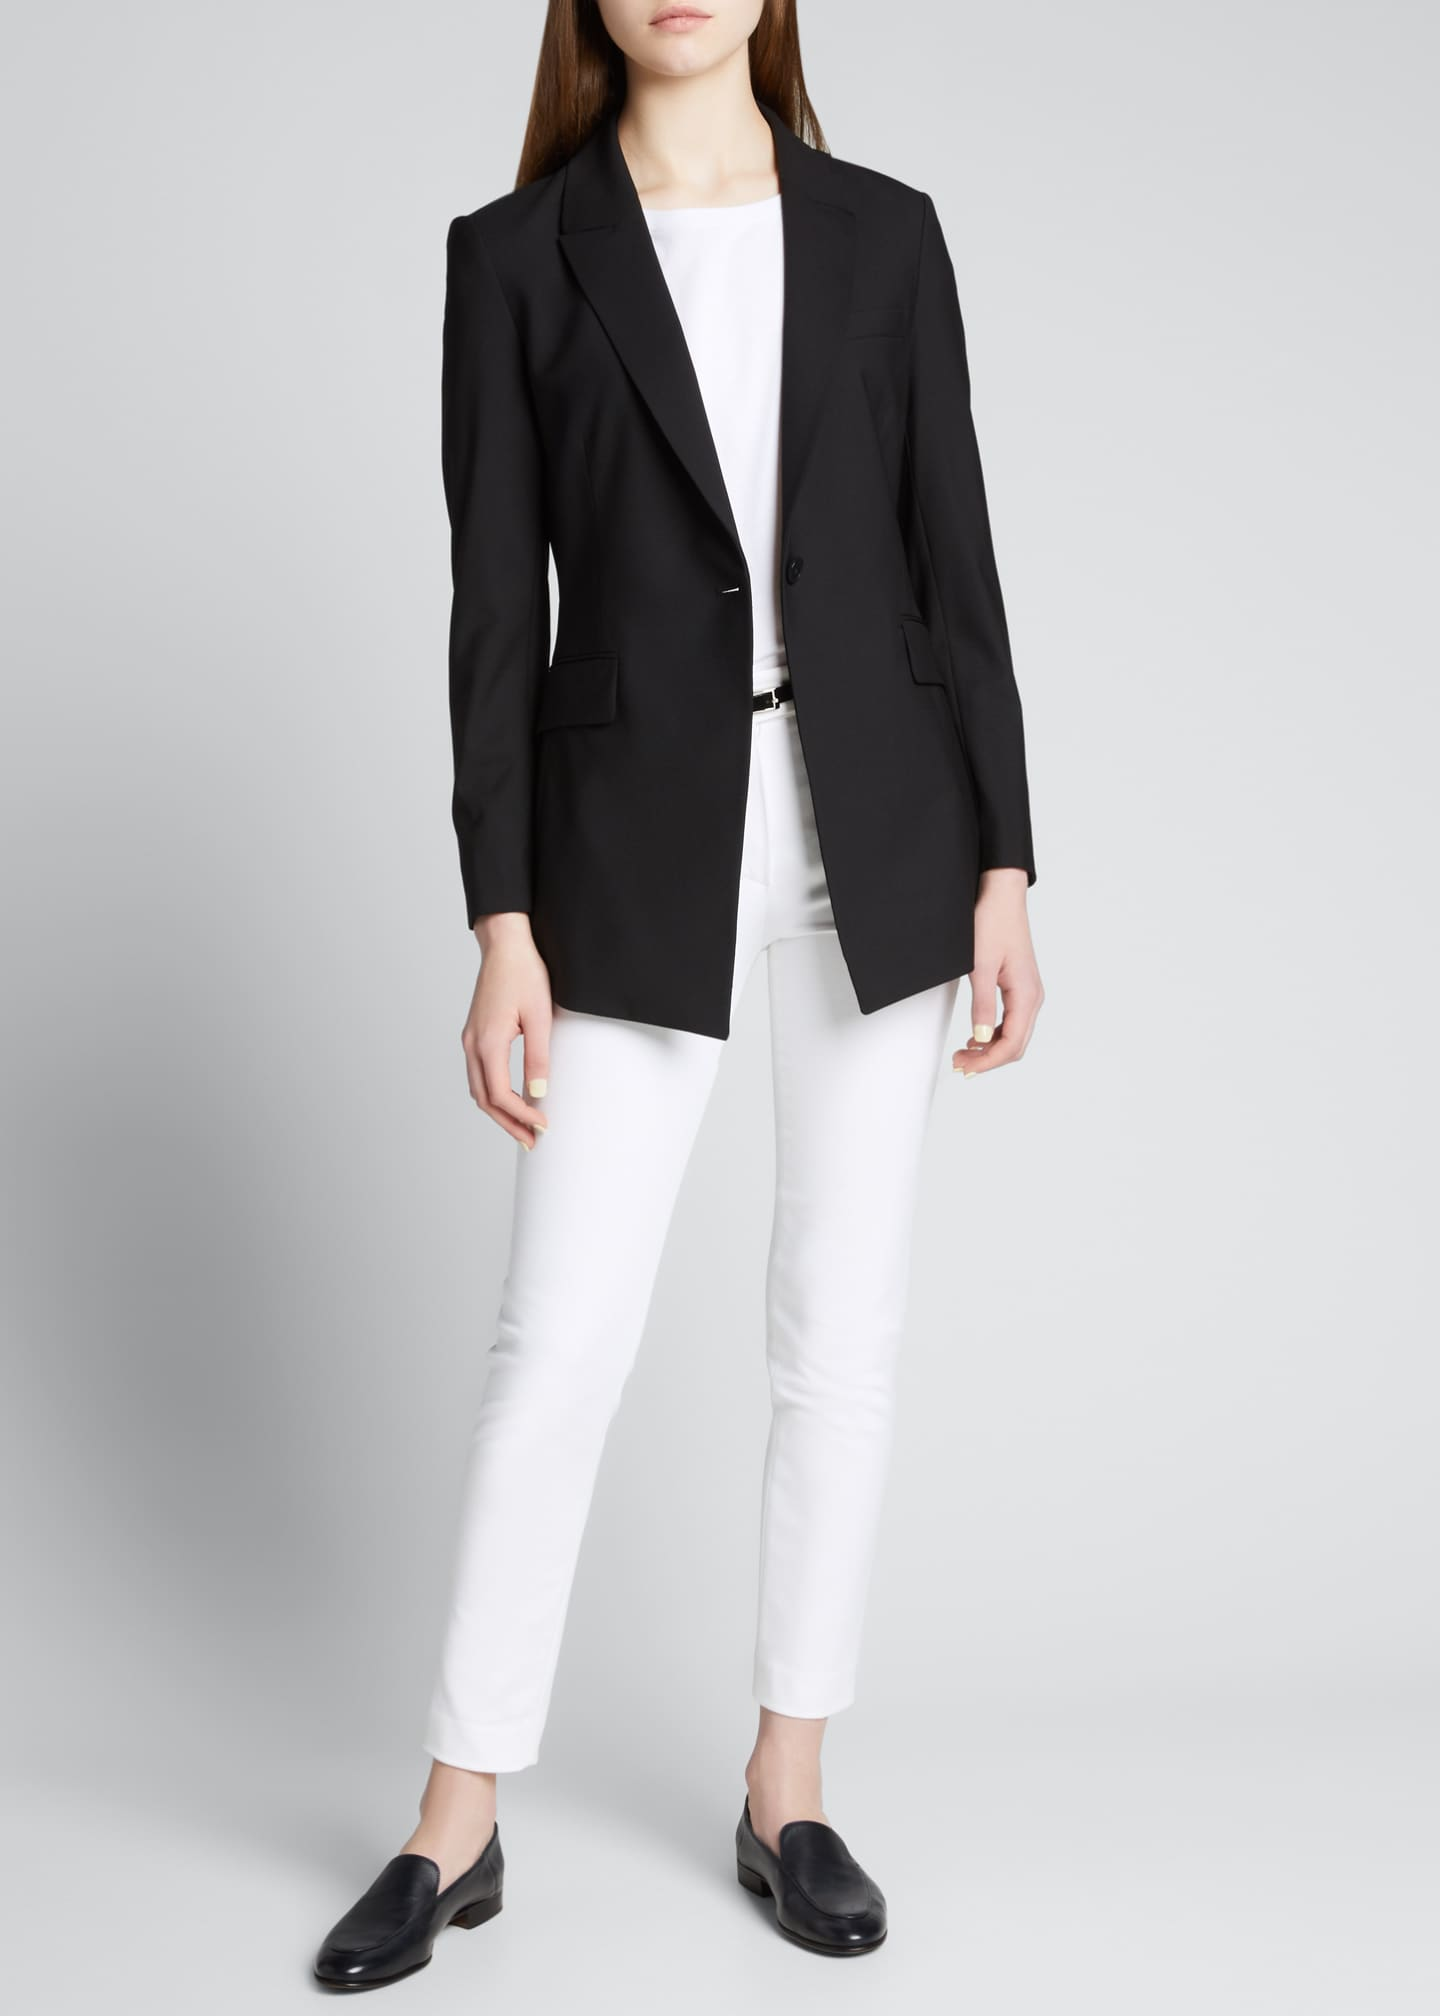 Image 1 of 1: Etiennette One-Button Good Wool Suiting Jacket